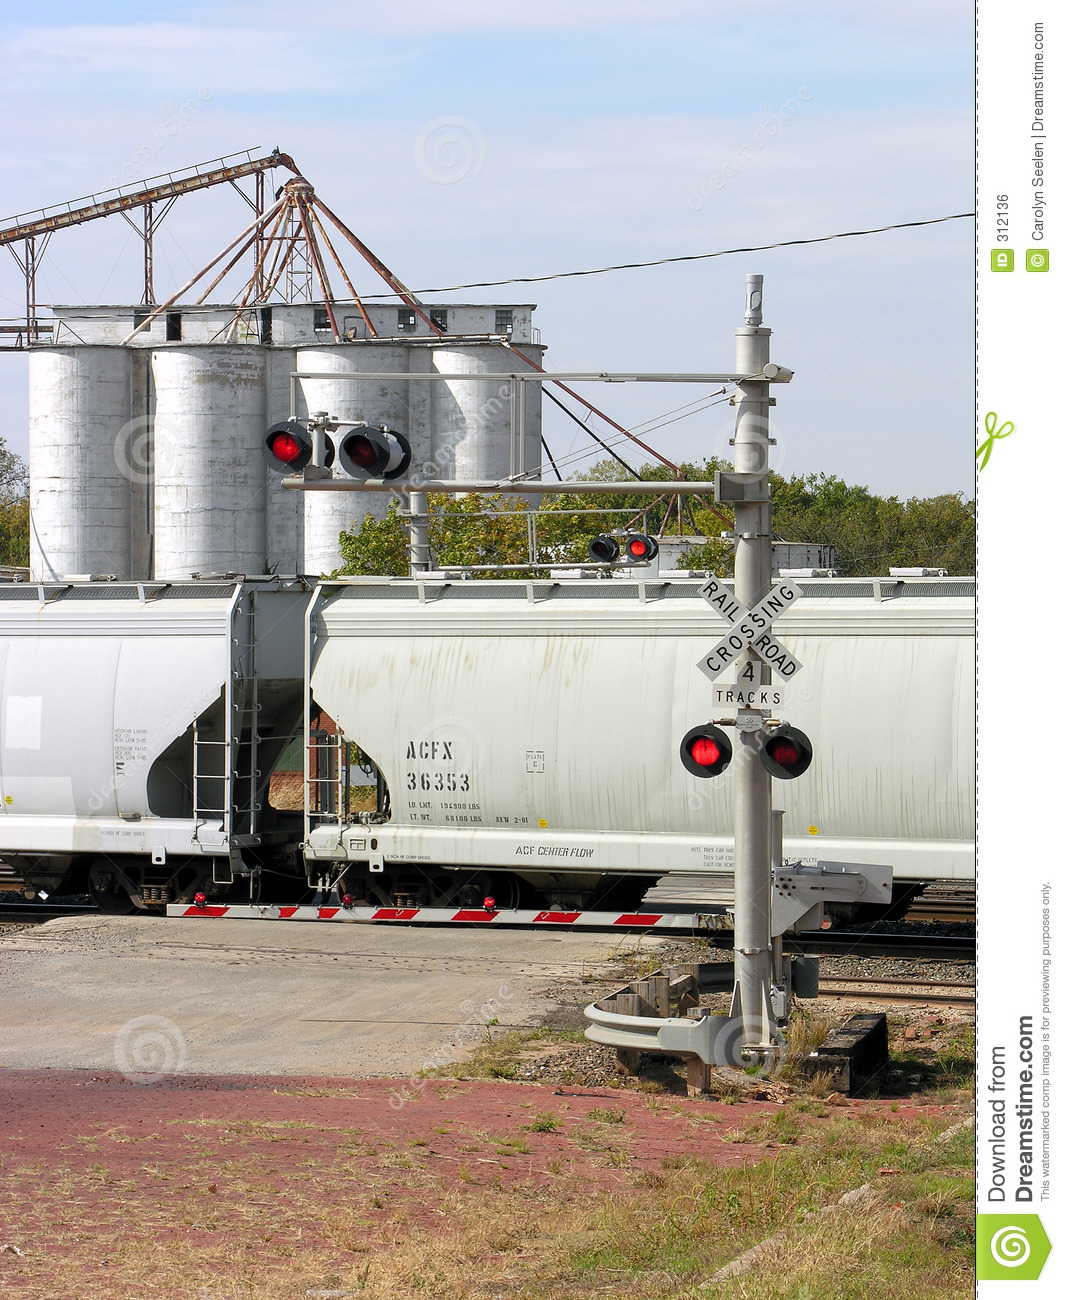 Train Crossing with Silos